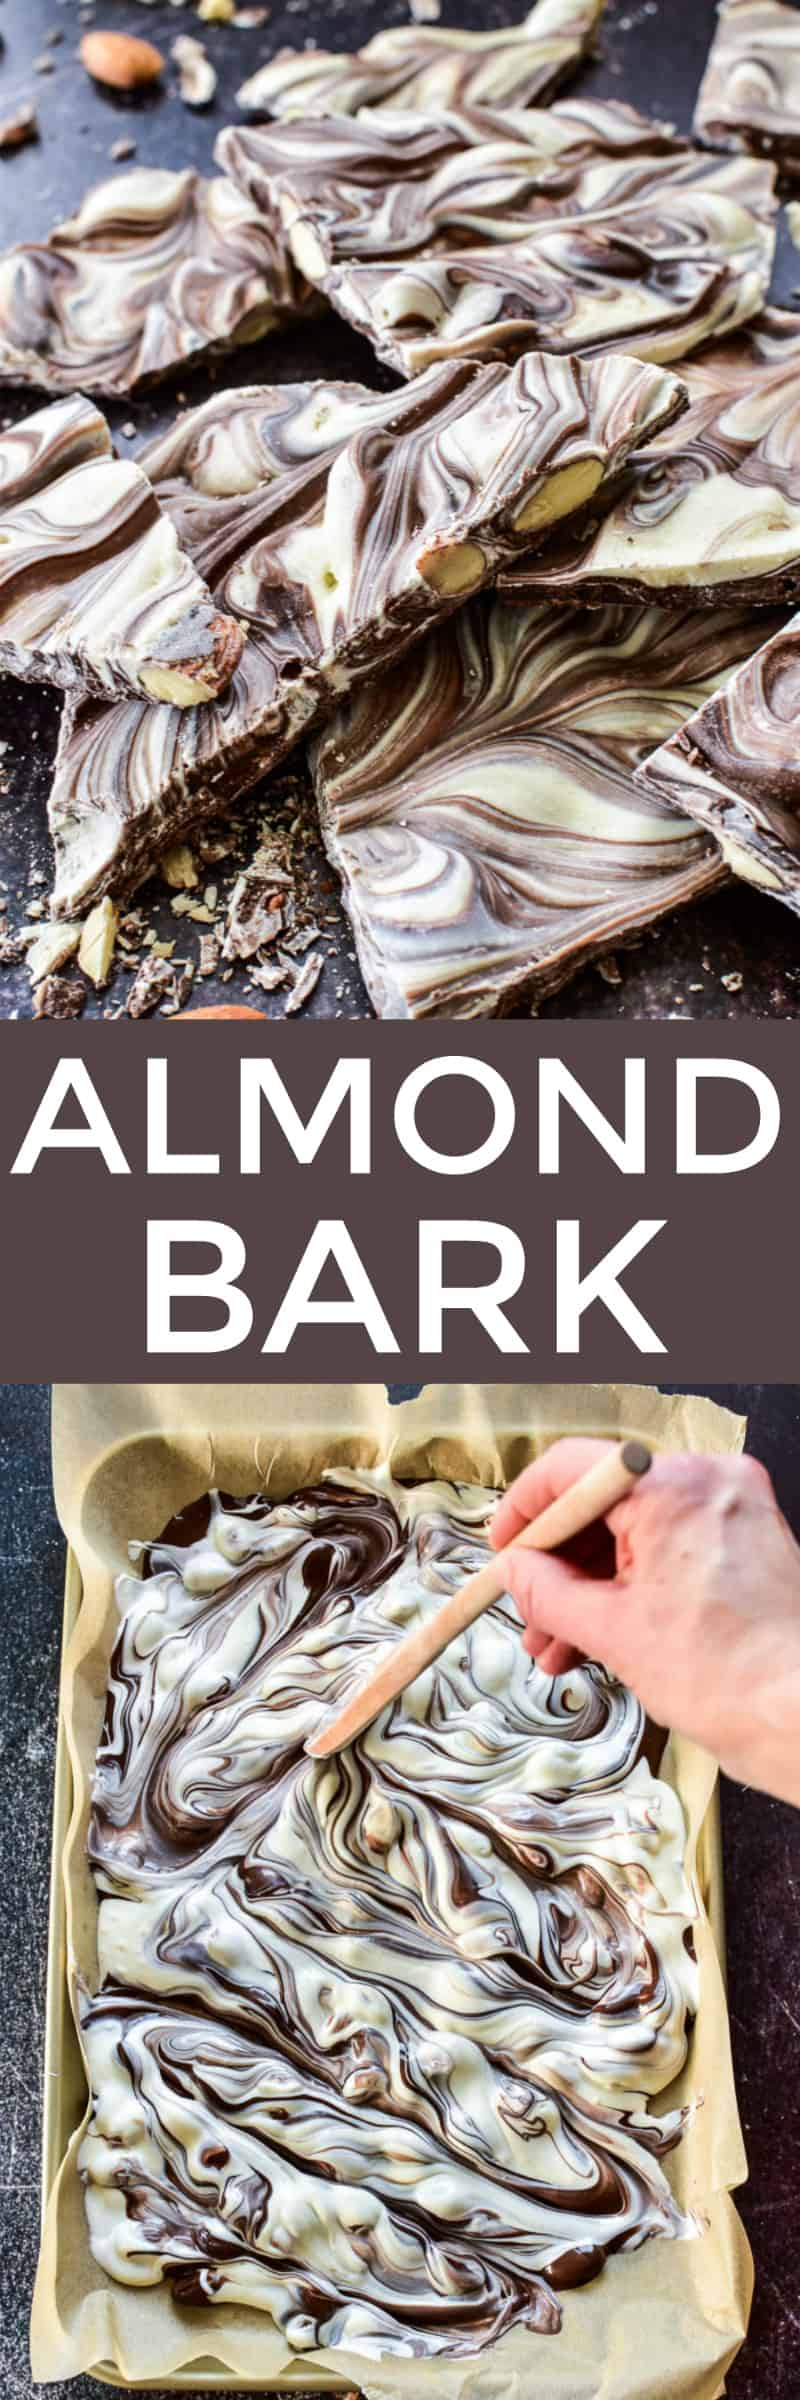 Collage image of Almond Bark